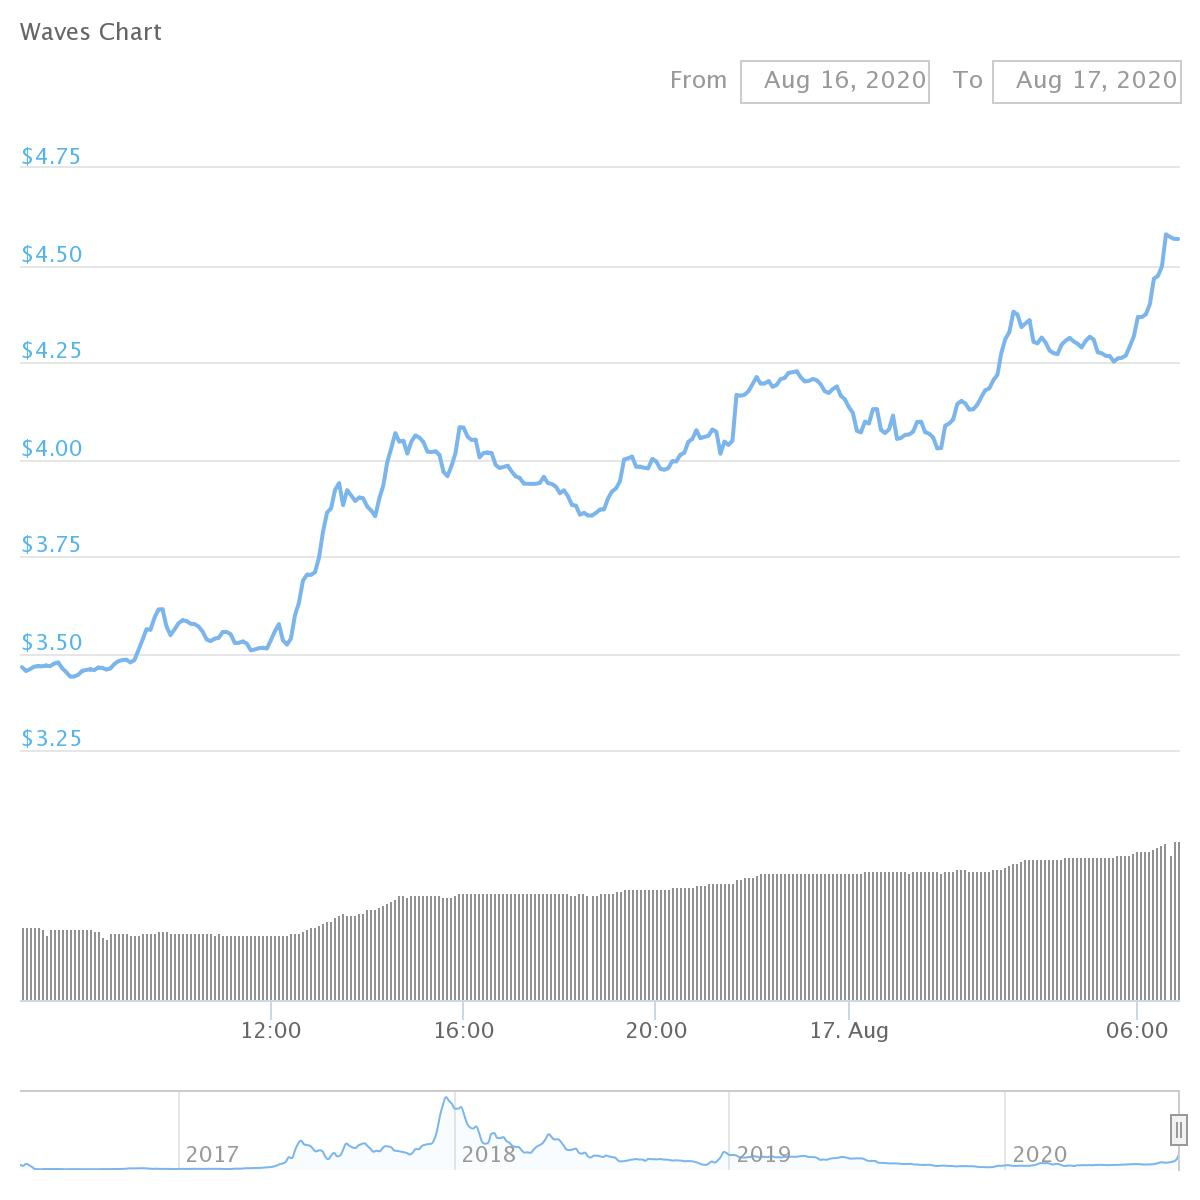 Waves (WAVES 32.2% Up):